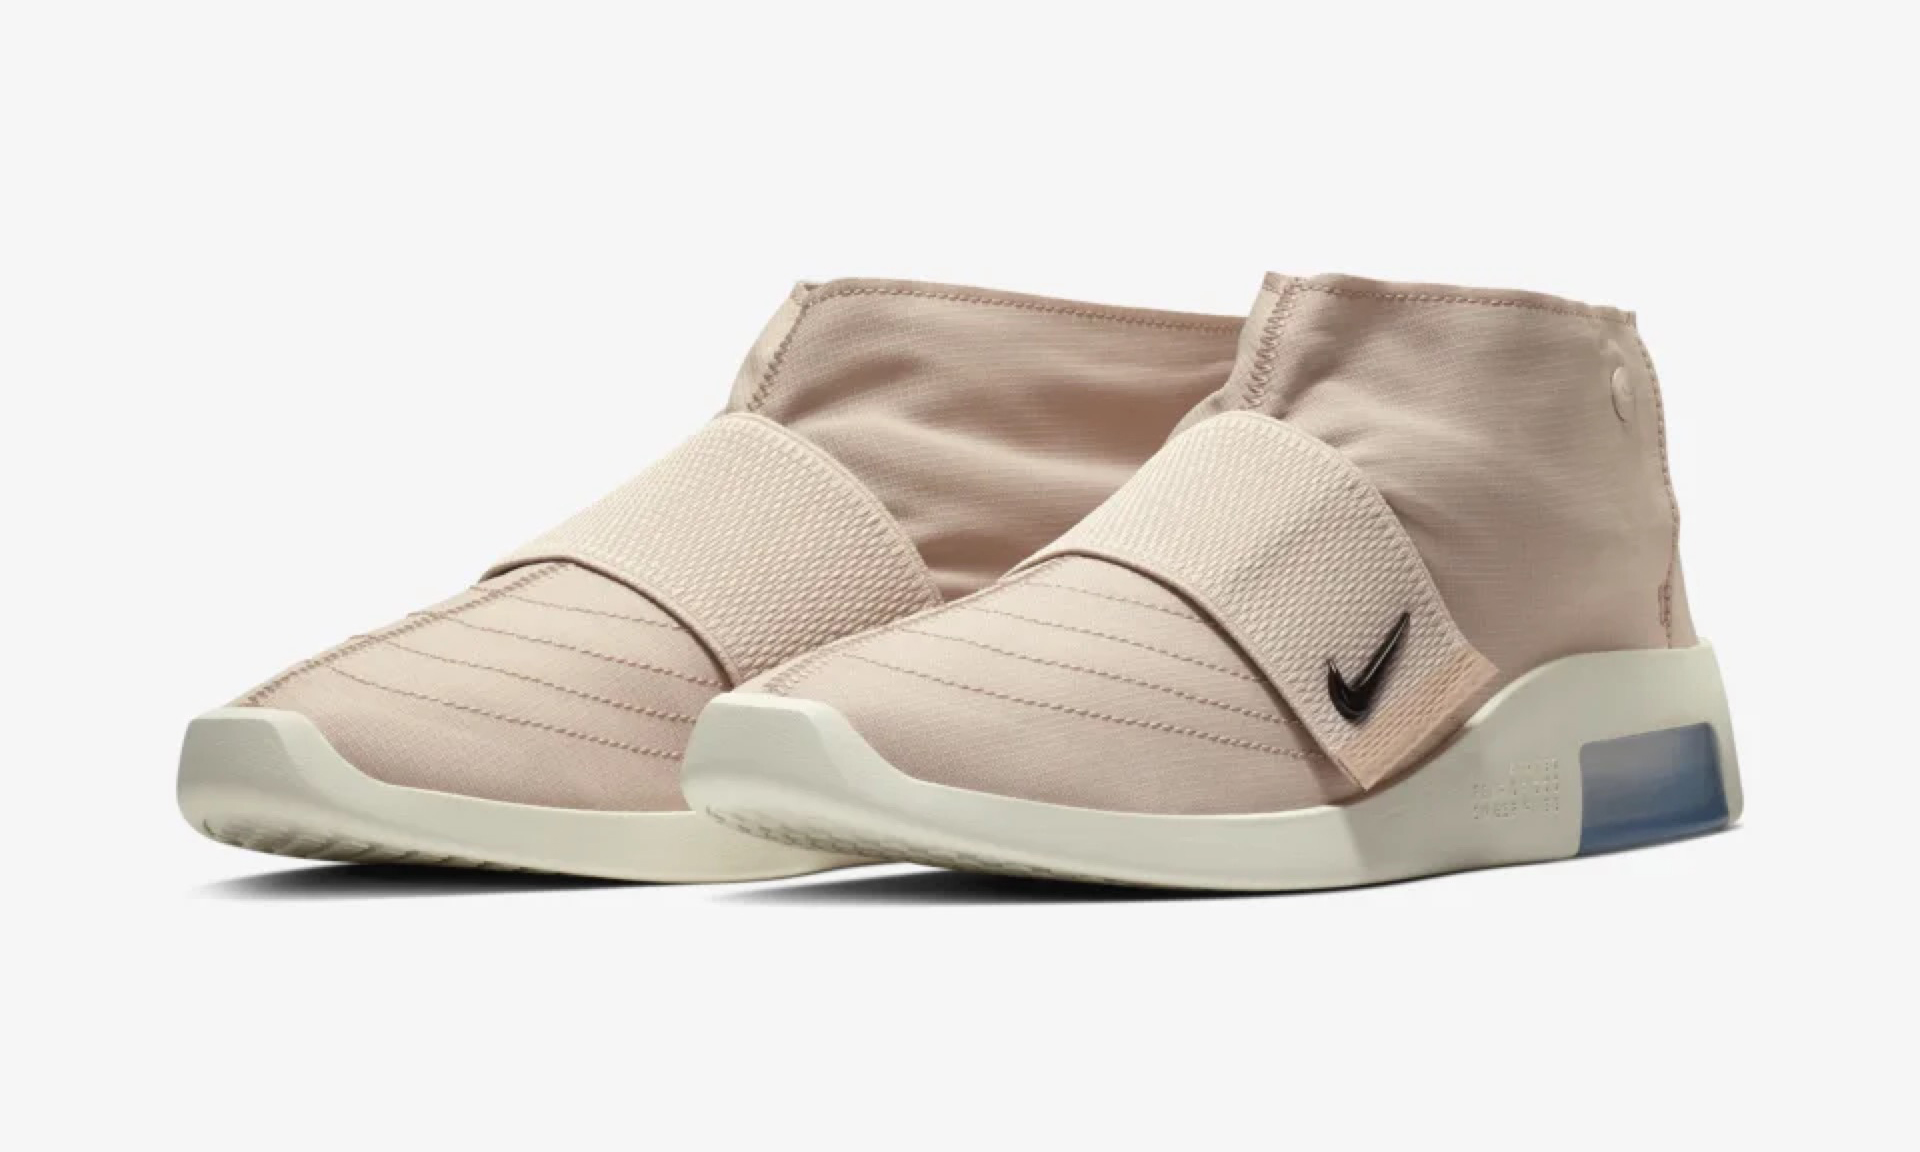 Nike Air Fear of God Moc 全新配色上架国区 SNKRS